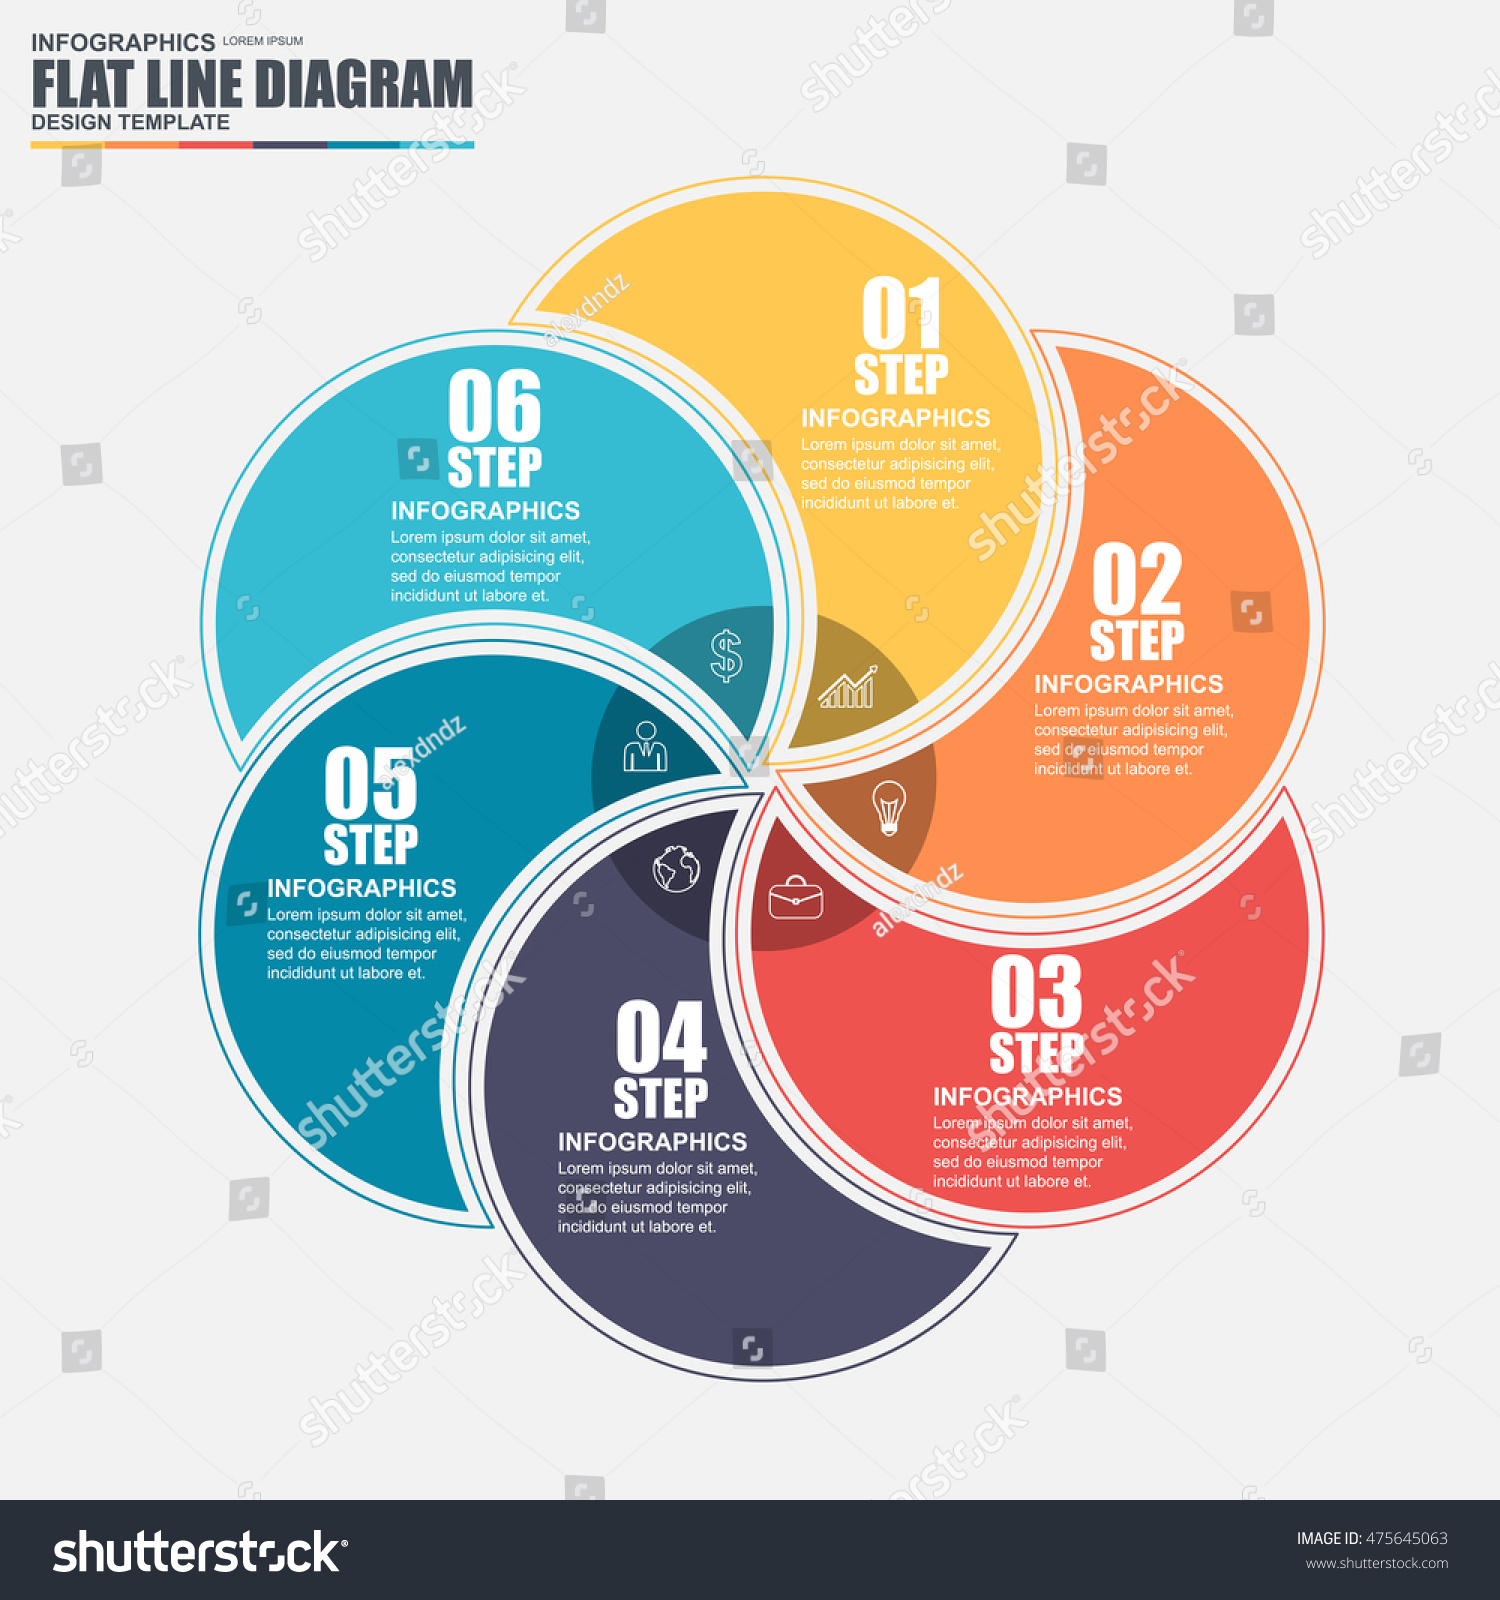 Thin Line Flat Cycle Diagram Infographic Stock Vector 475645063 ...